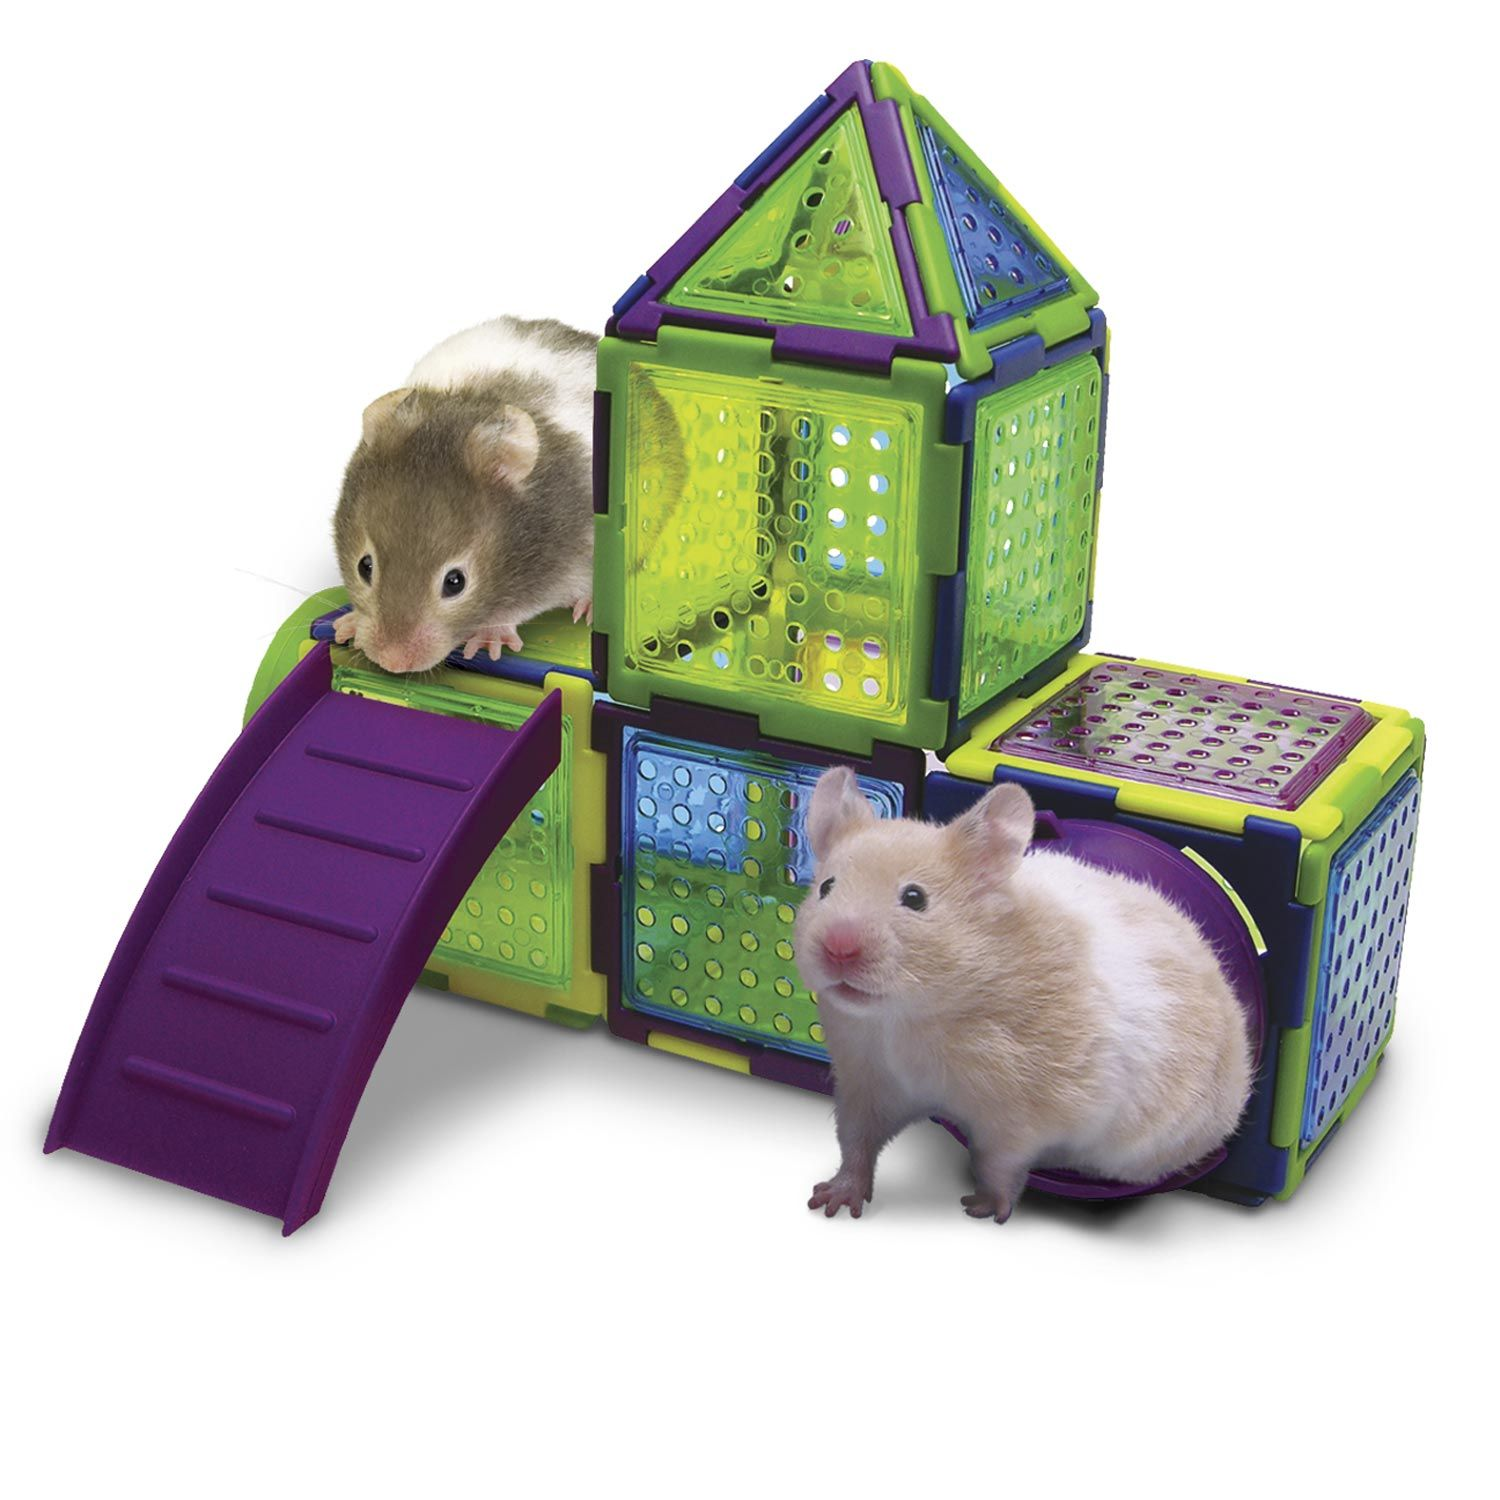 Super Pet Puzzle Playground Small Animal Junglegym Pet Mice Small Pets Hamster Toys